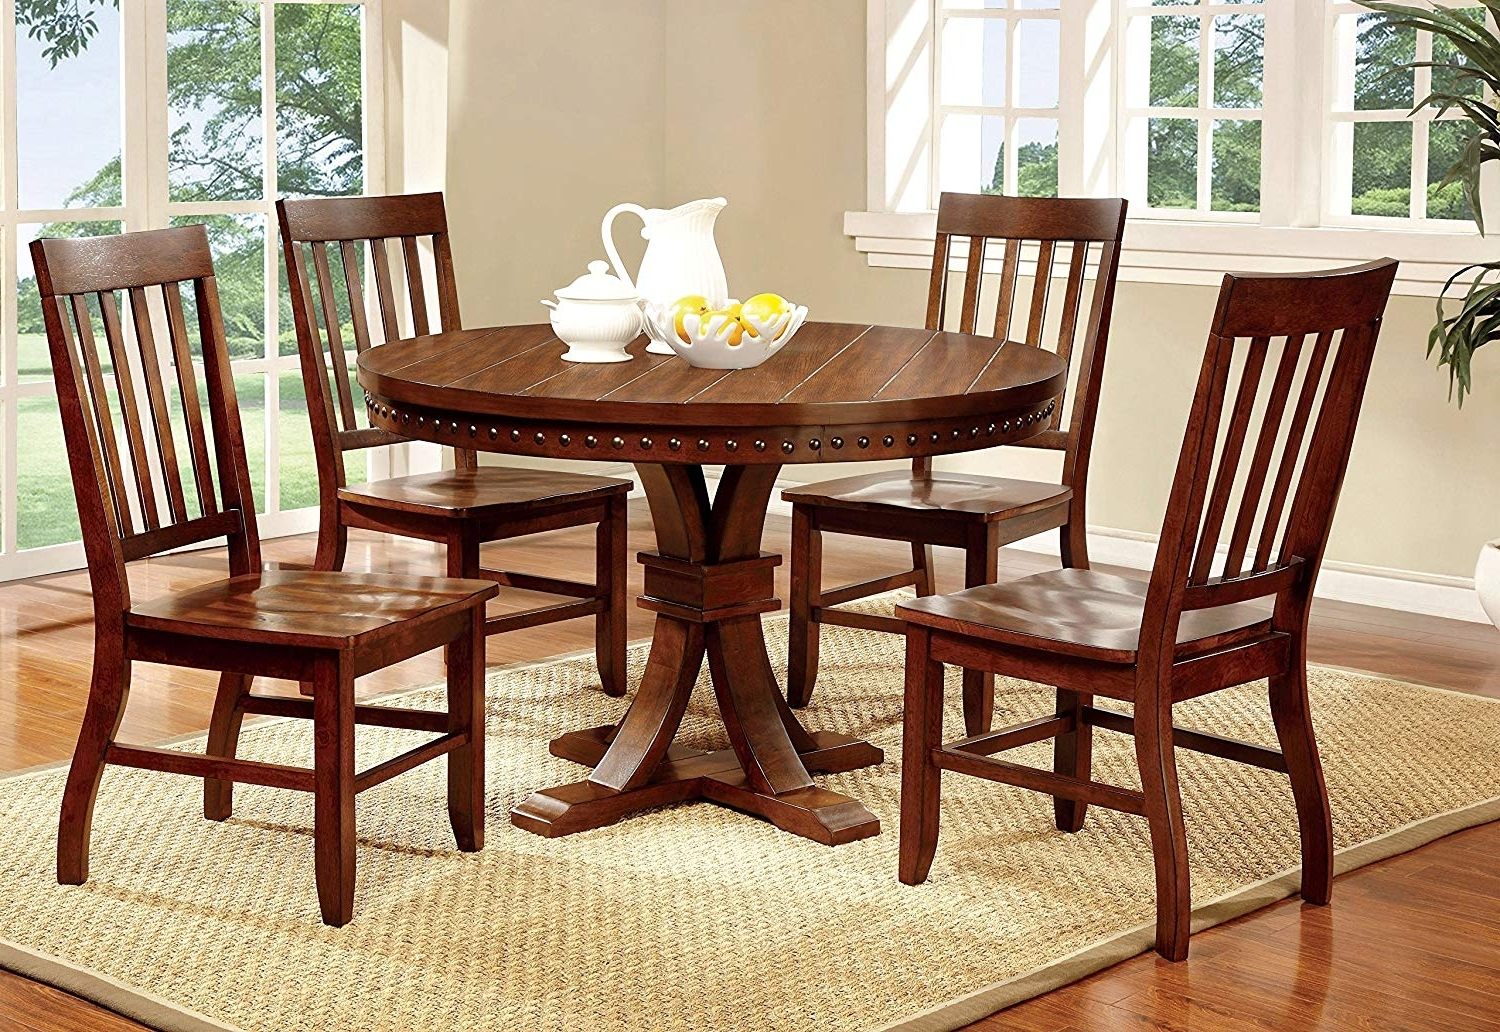 Well Liked Amazon – Furniture Of America Castile 5 Piece Transitional Round In Market 5 Piece Counter Sets (View 14 of 25)